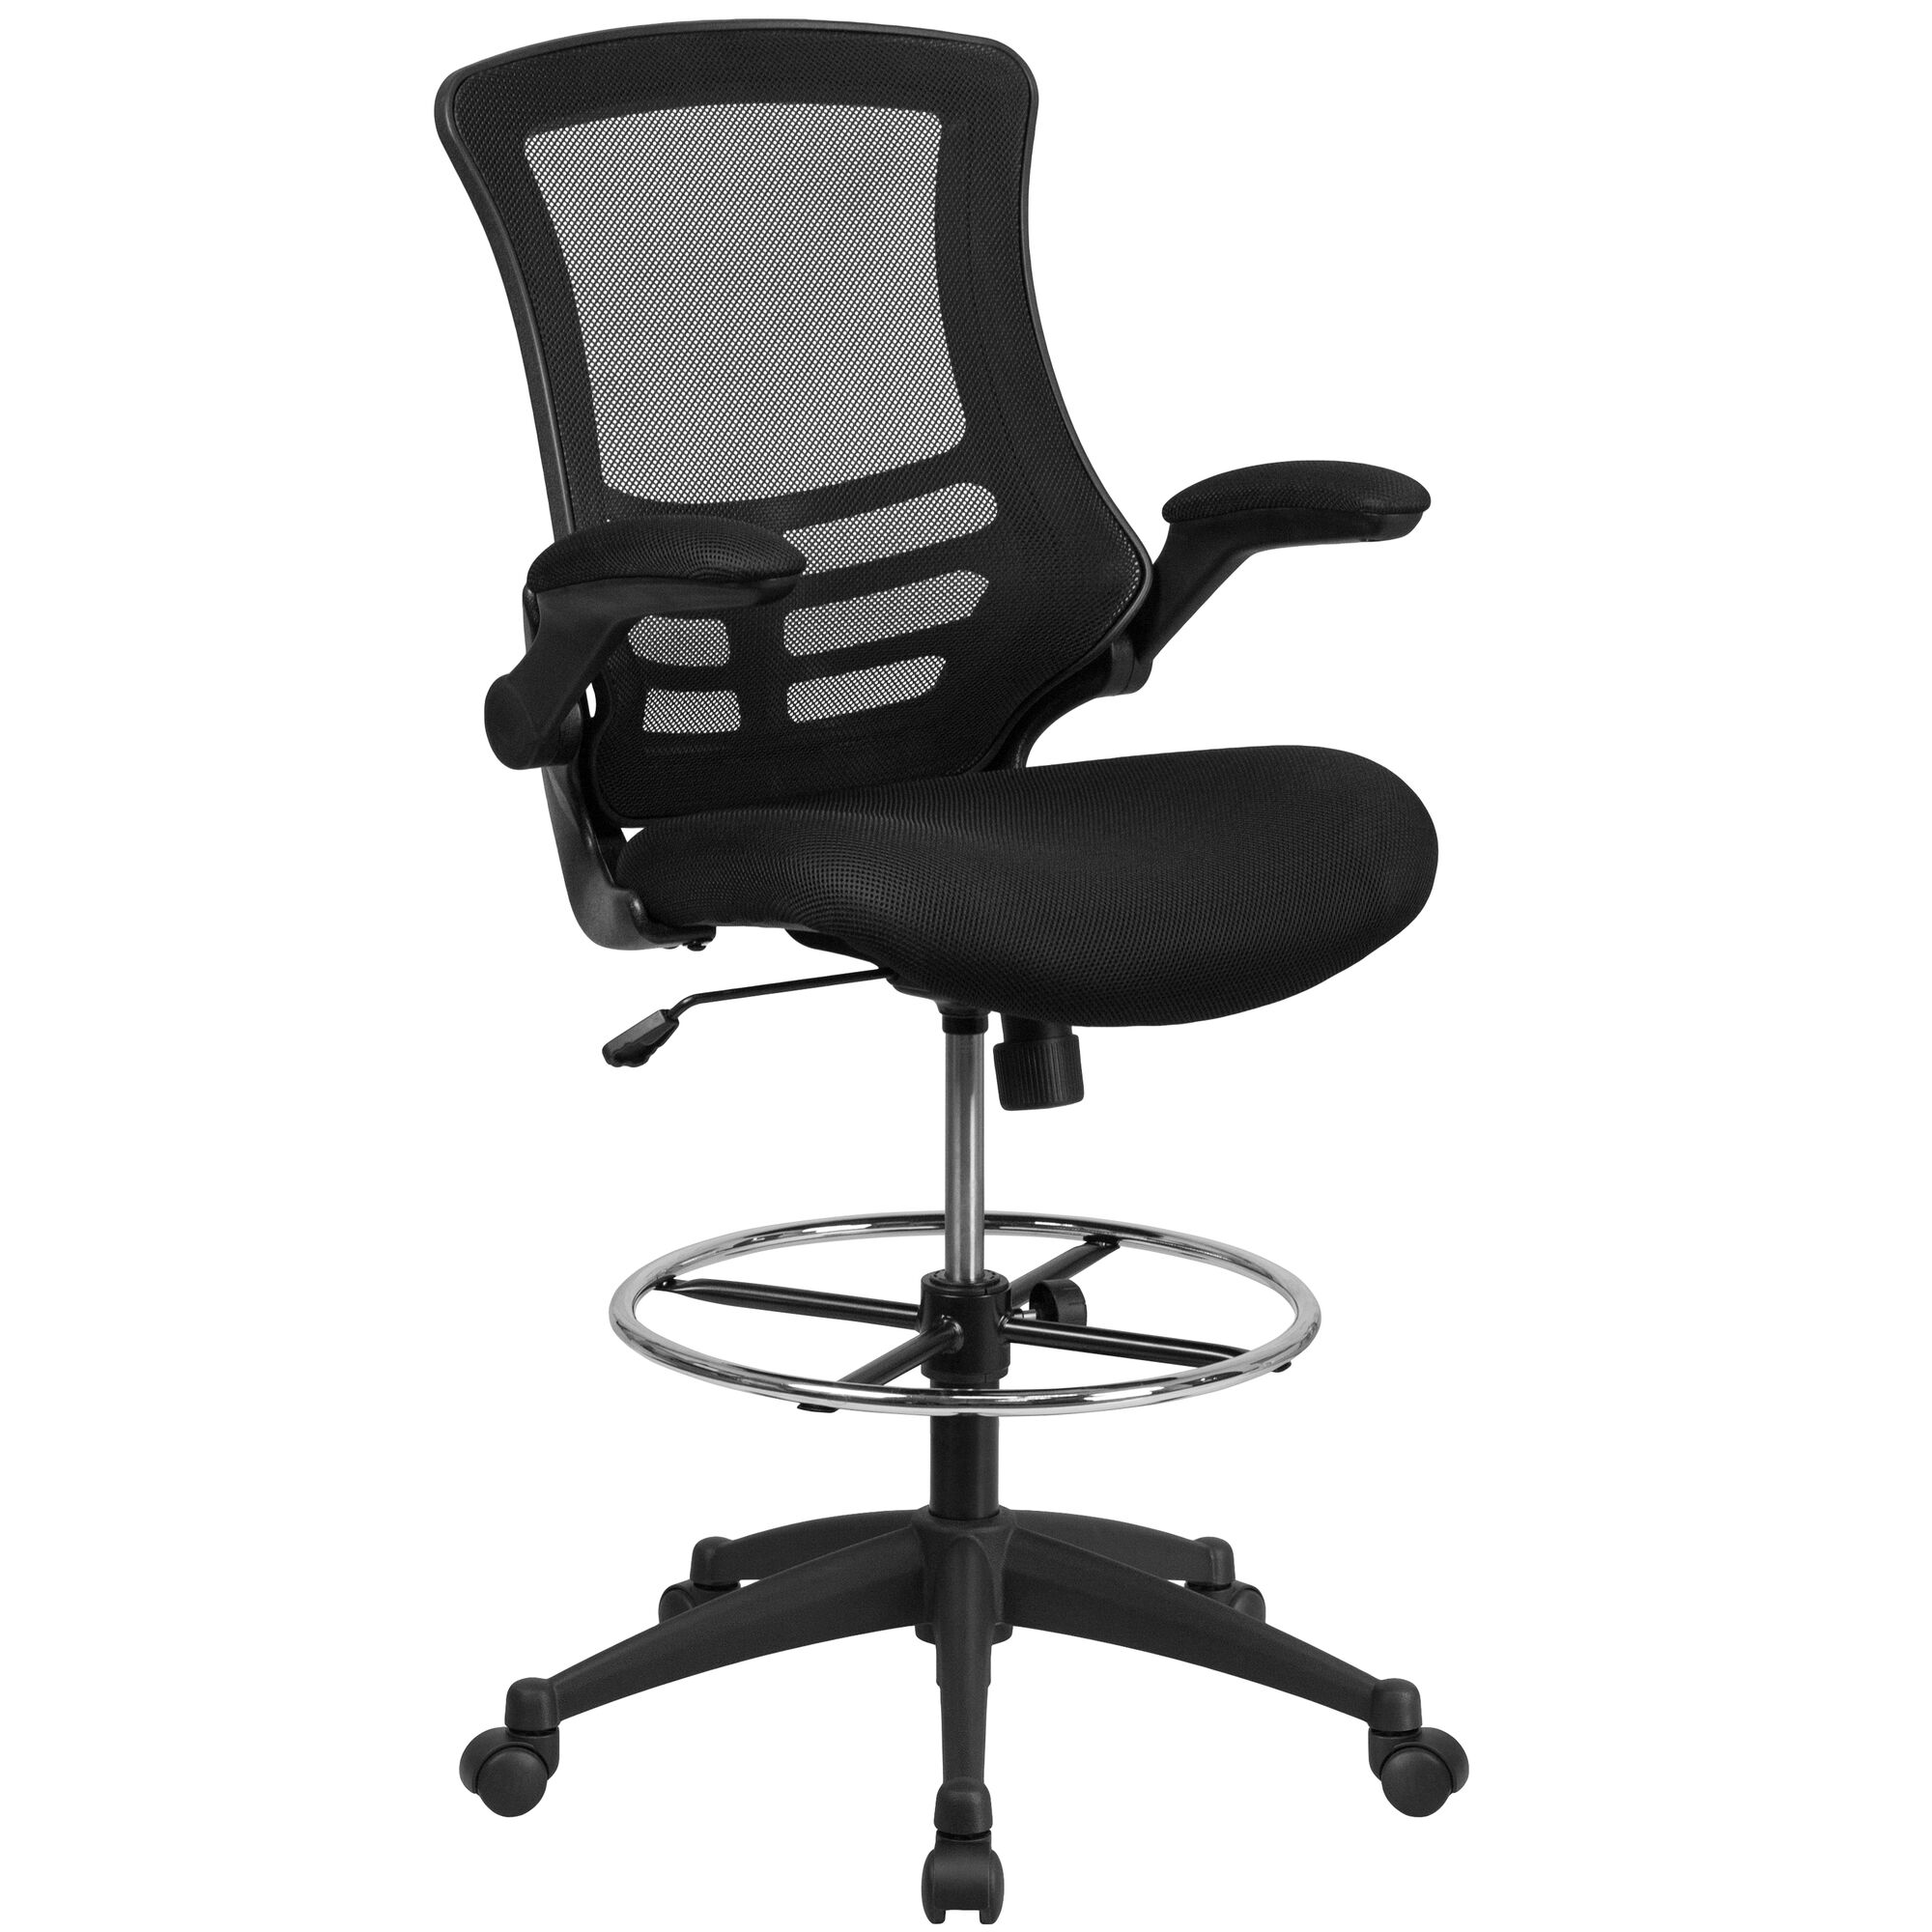 Astounding Mid Back Black Mesh Ergonomic Drafting Chair With Adjustable Foot Ring And Flip Up Arms Gmtry Best Dining Table And Chair Ideas Images Gmtryco